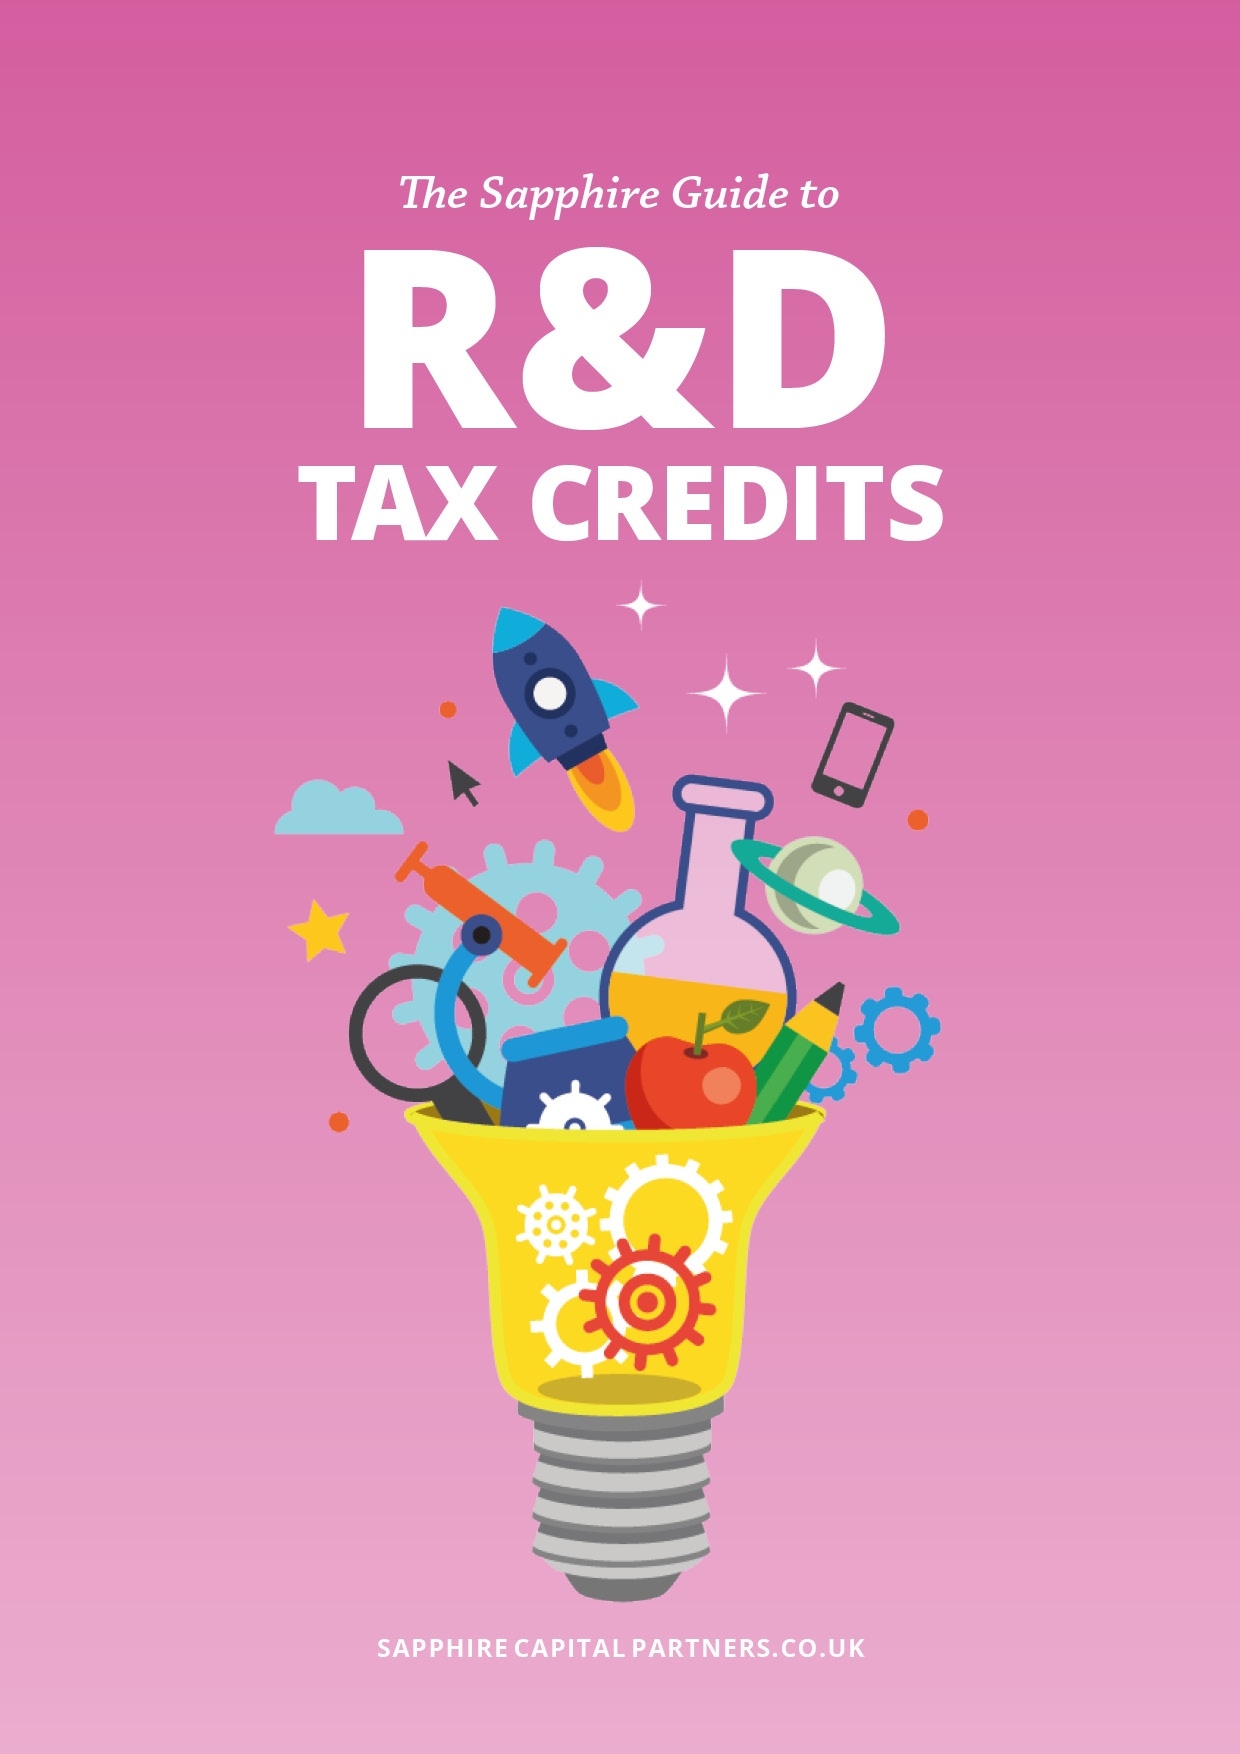 The Sapphire Guide to R&D Tax Credits